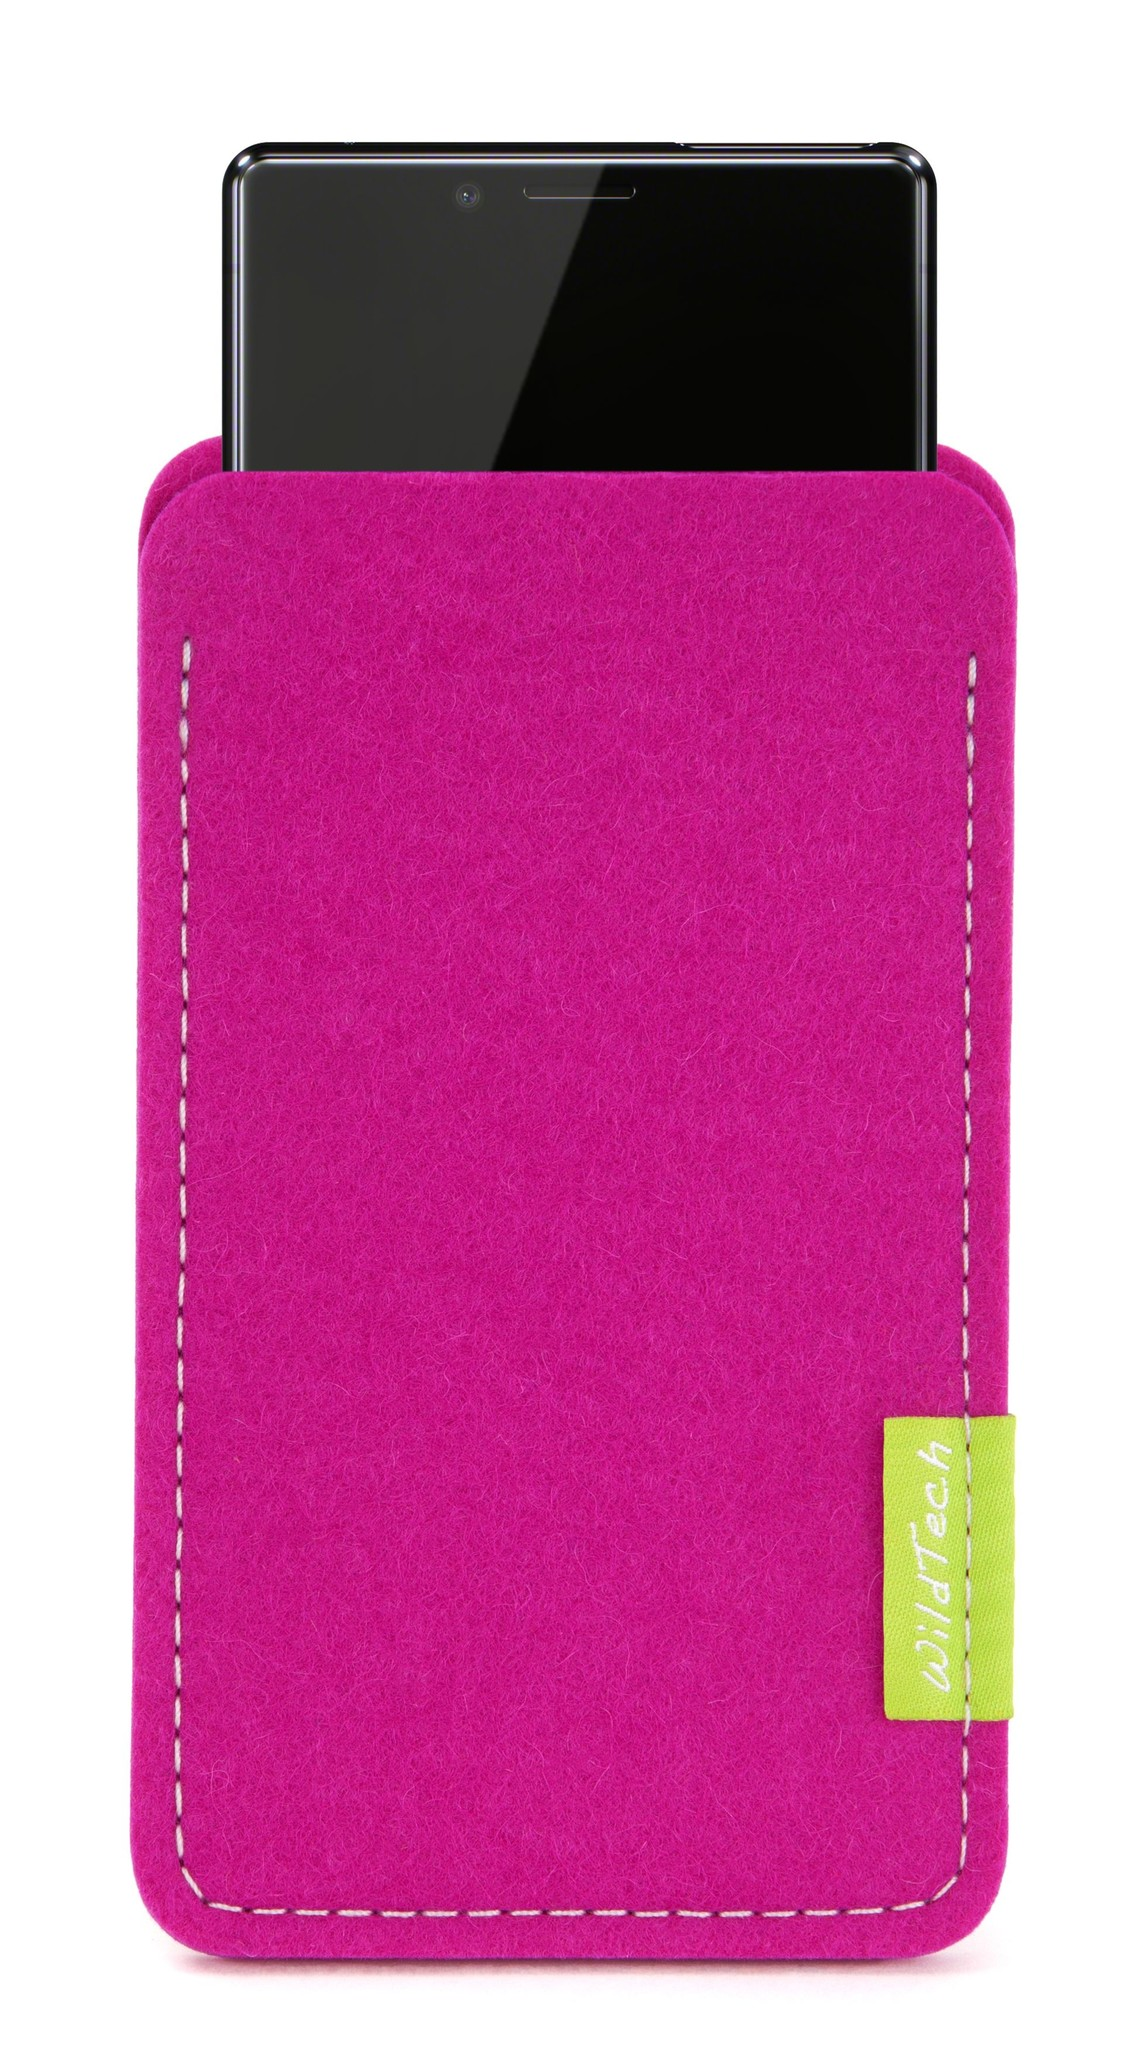 Xperia Sleeve Pink-1